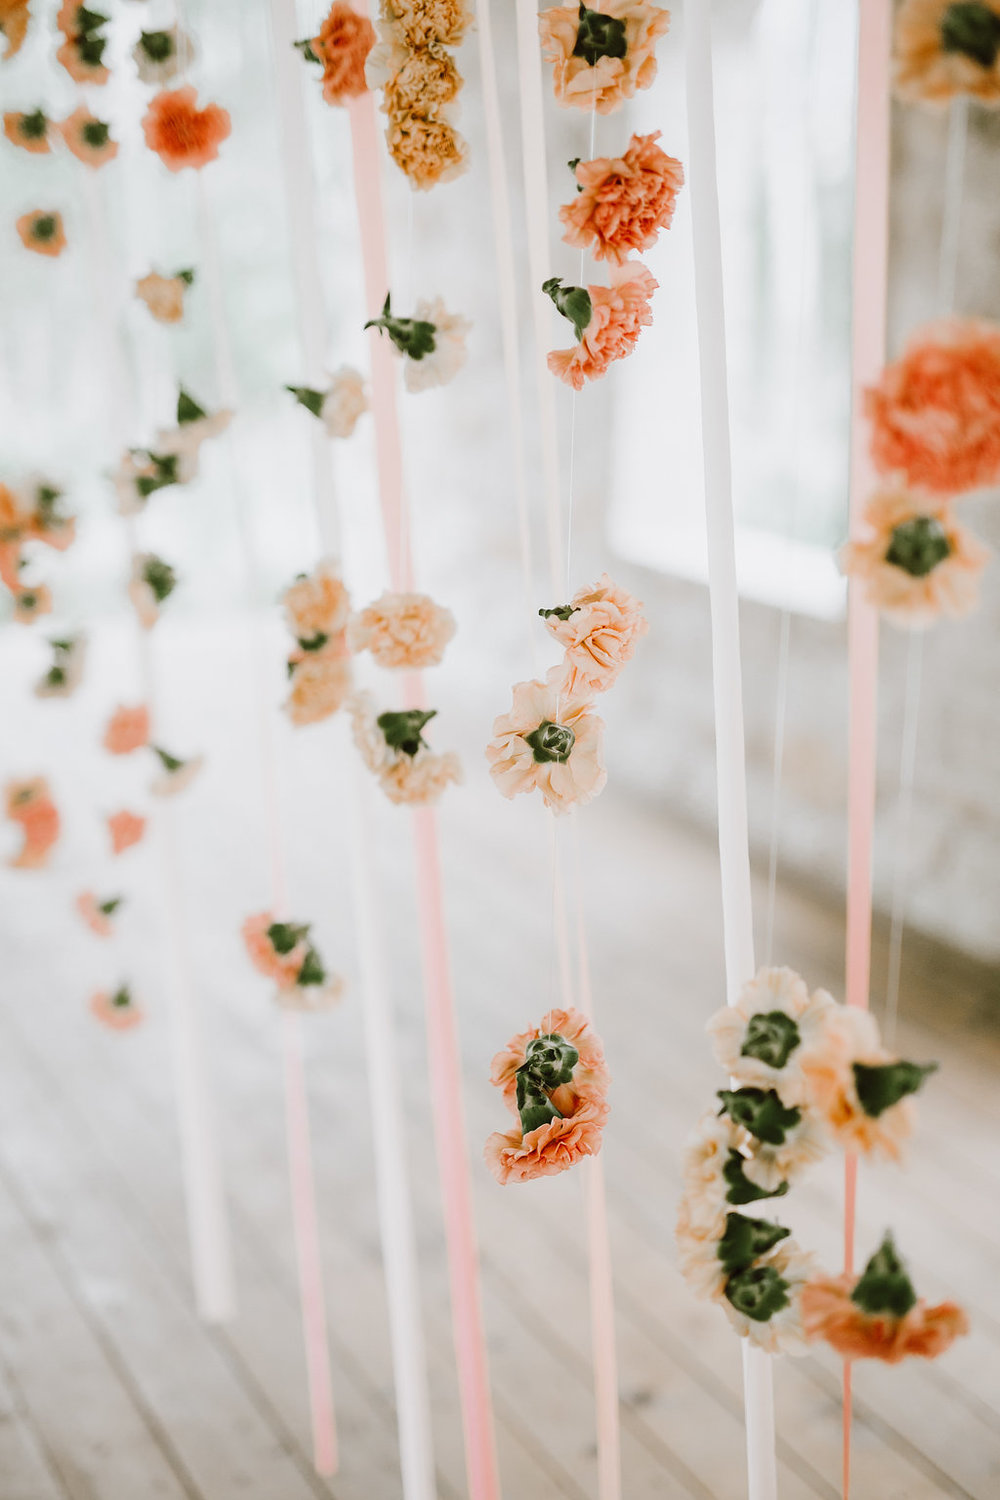 Hanging Flowers Wedding Ceremony Backdrop - Stone House Creative